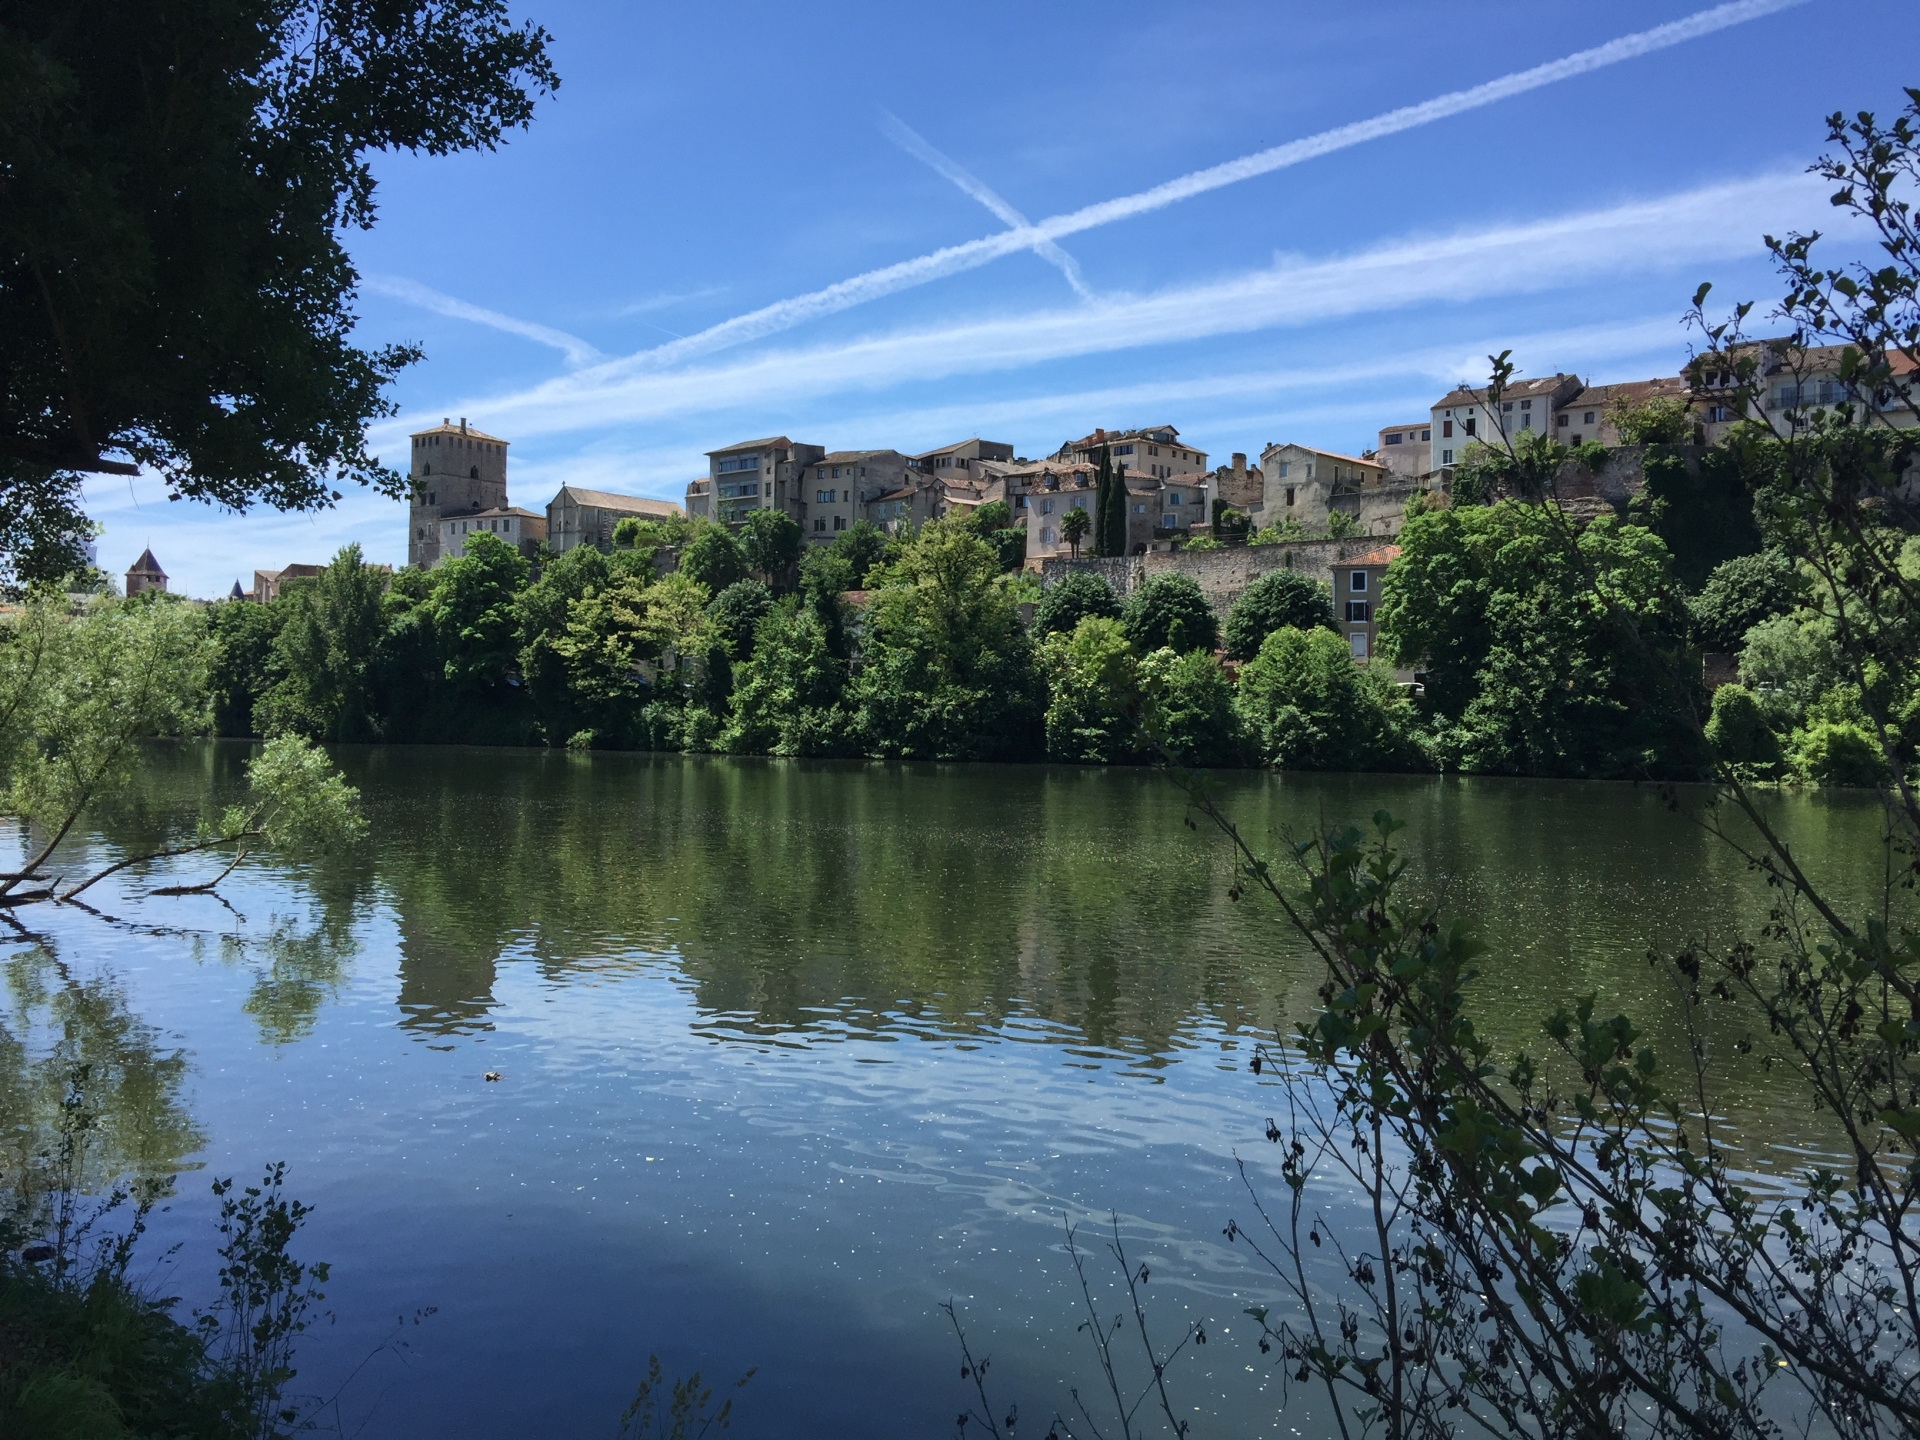 The old quarter of Cahors, from across the river Lot